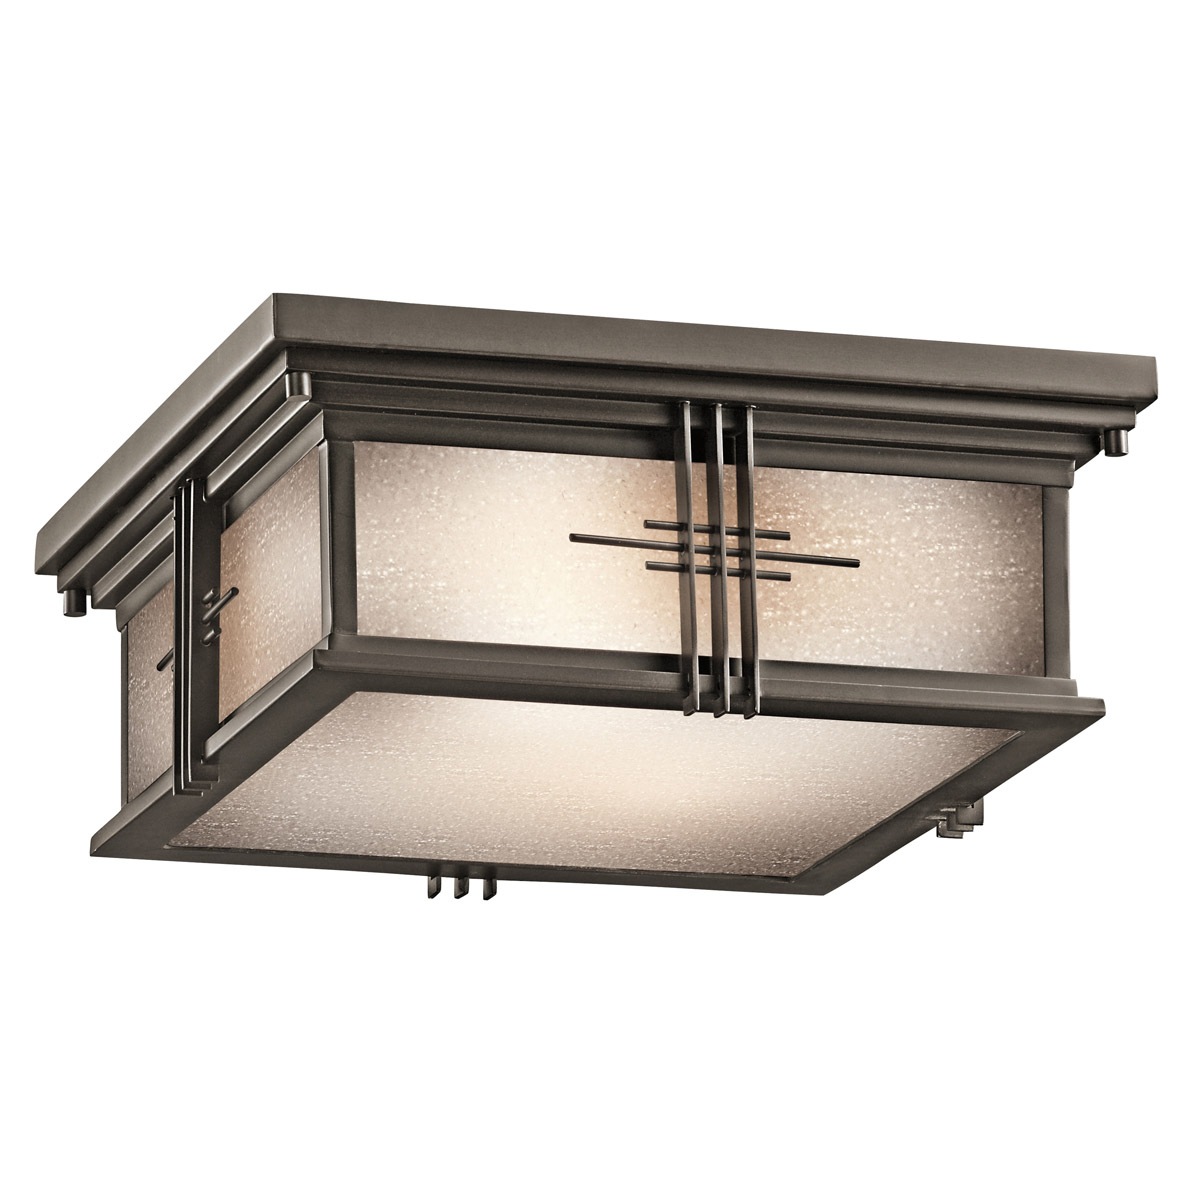 Lovely Kichler 49164OZ Portman Square Outdoor Flush Mount Ceiling Fixture